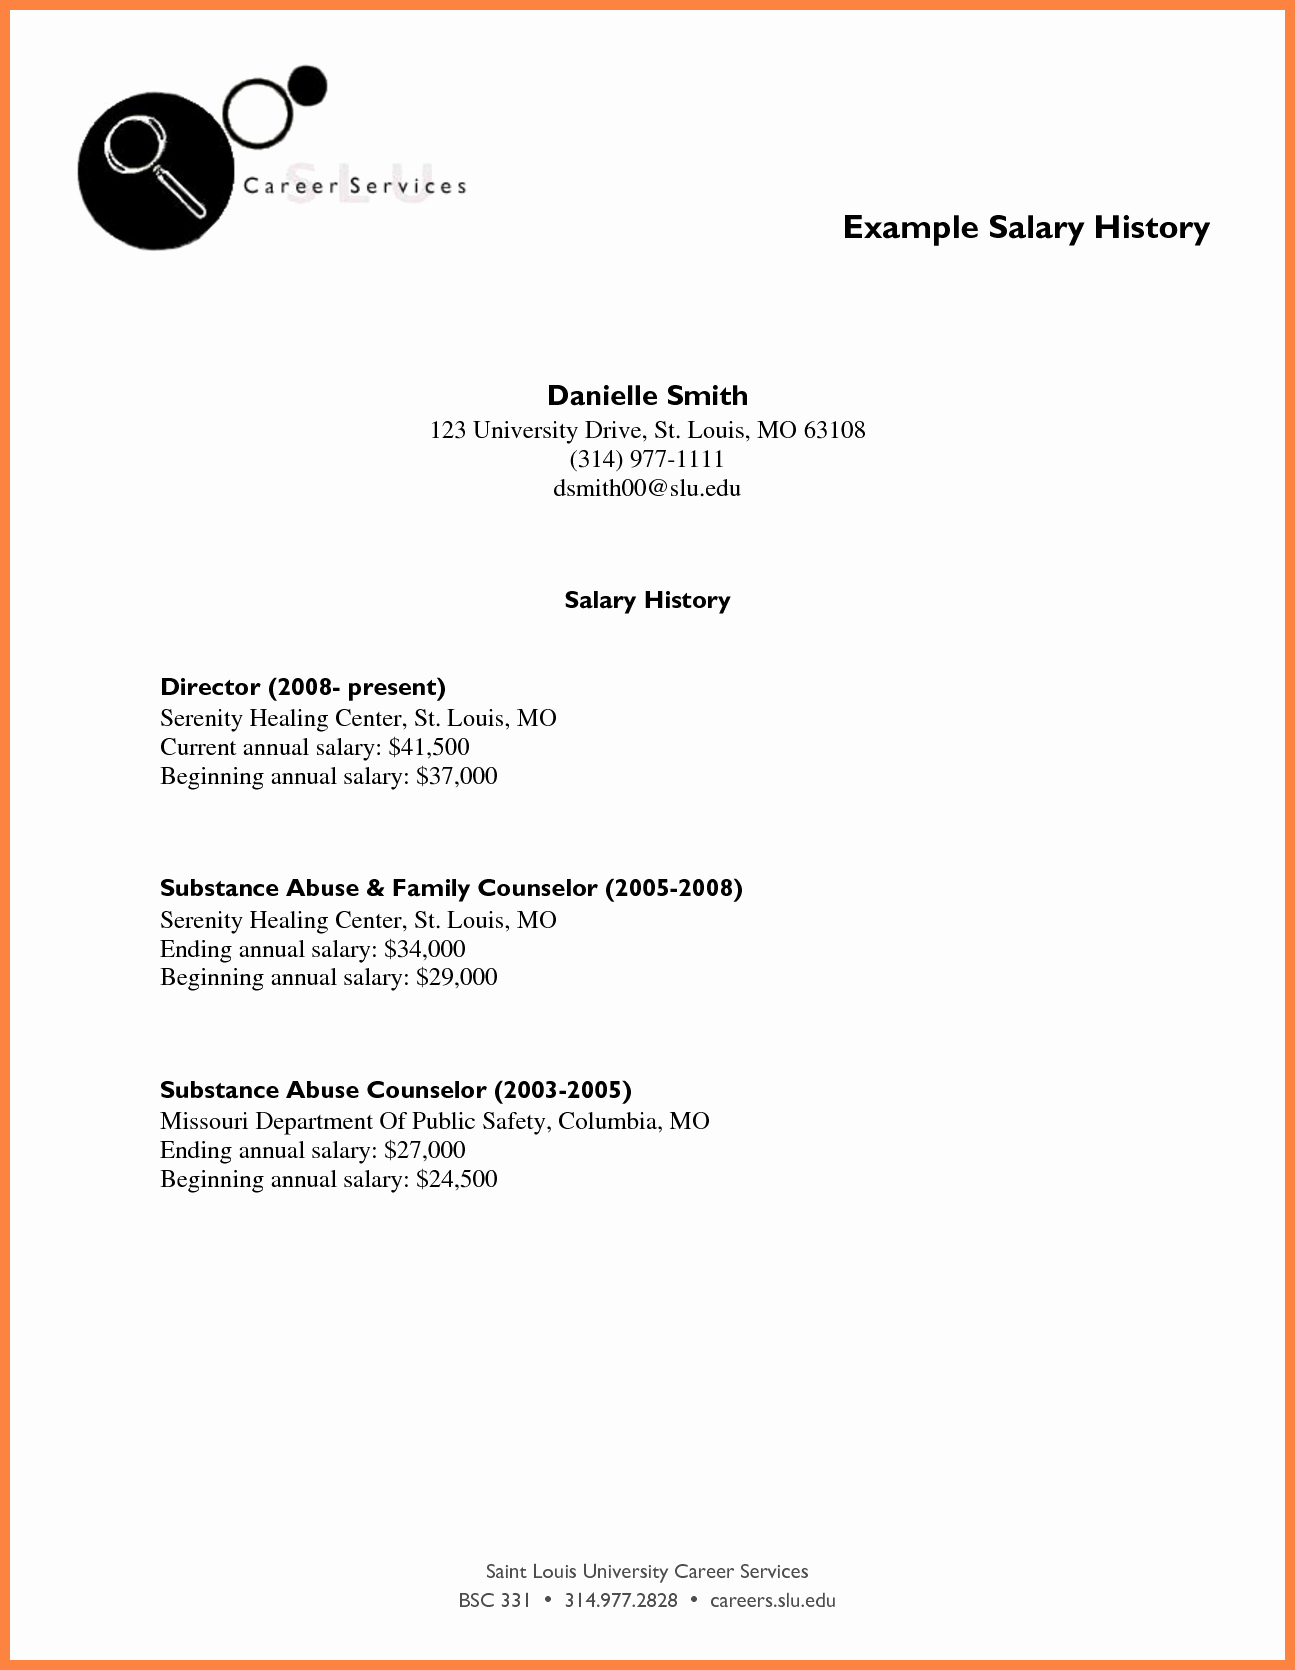 Salary History In Cover Letter Luxury 3 Including Salary History In Cover Letter